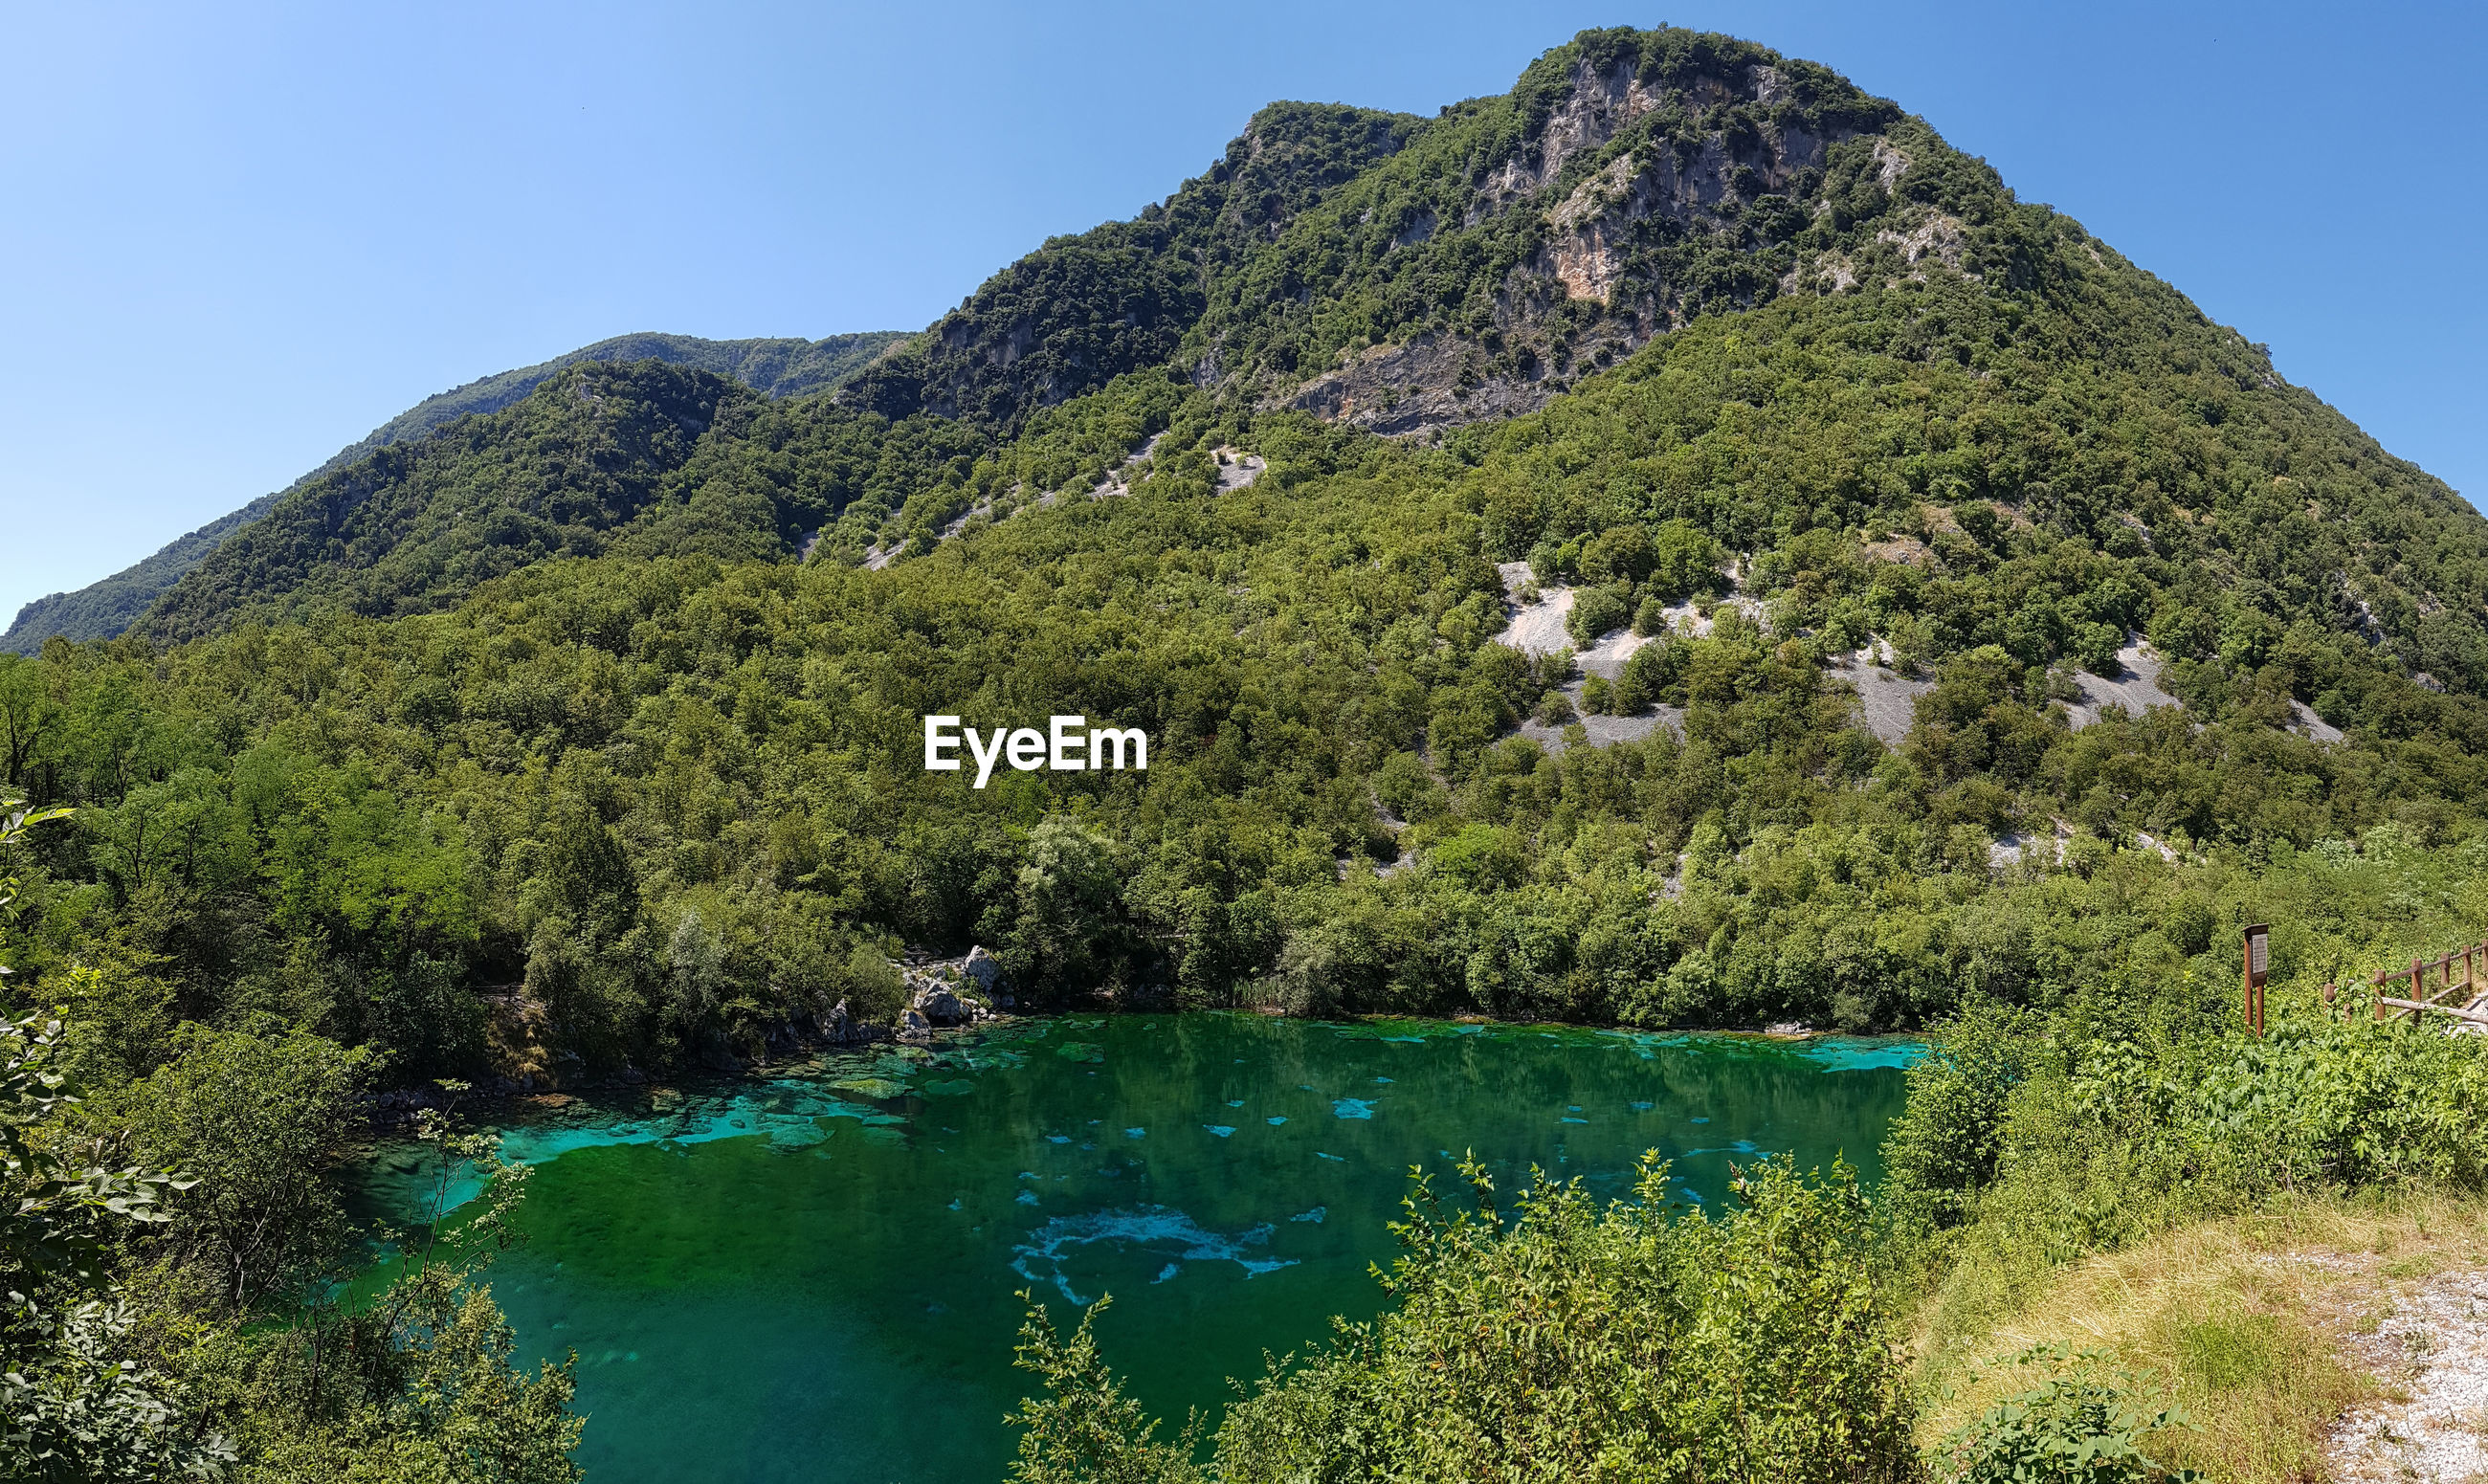 SCENIC VIEW OF LAKE BY TREE MOUNTAINS AGAINST CLEAR SKY